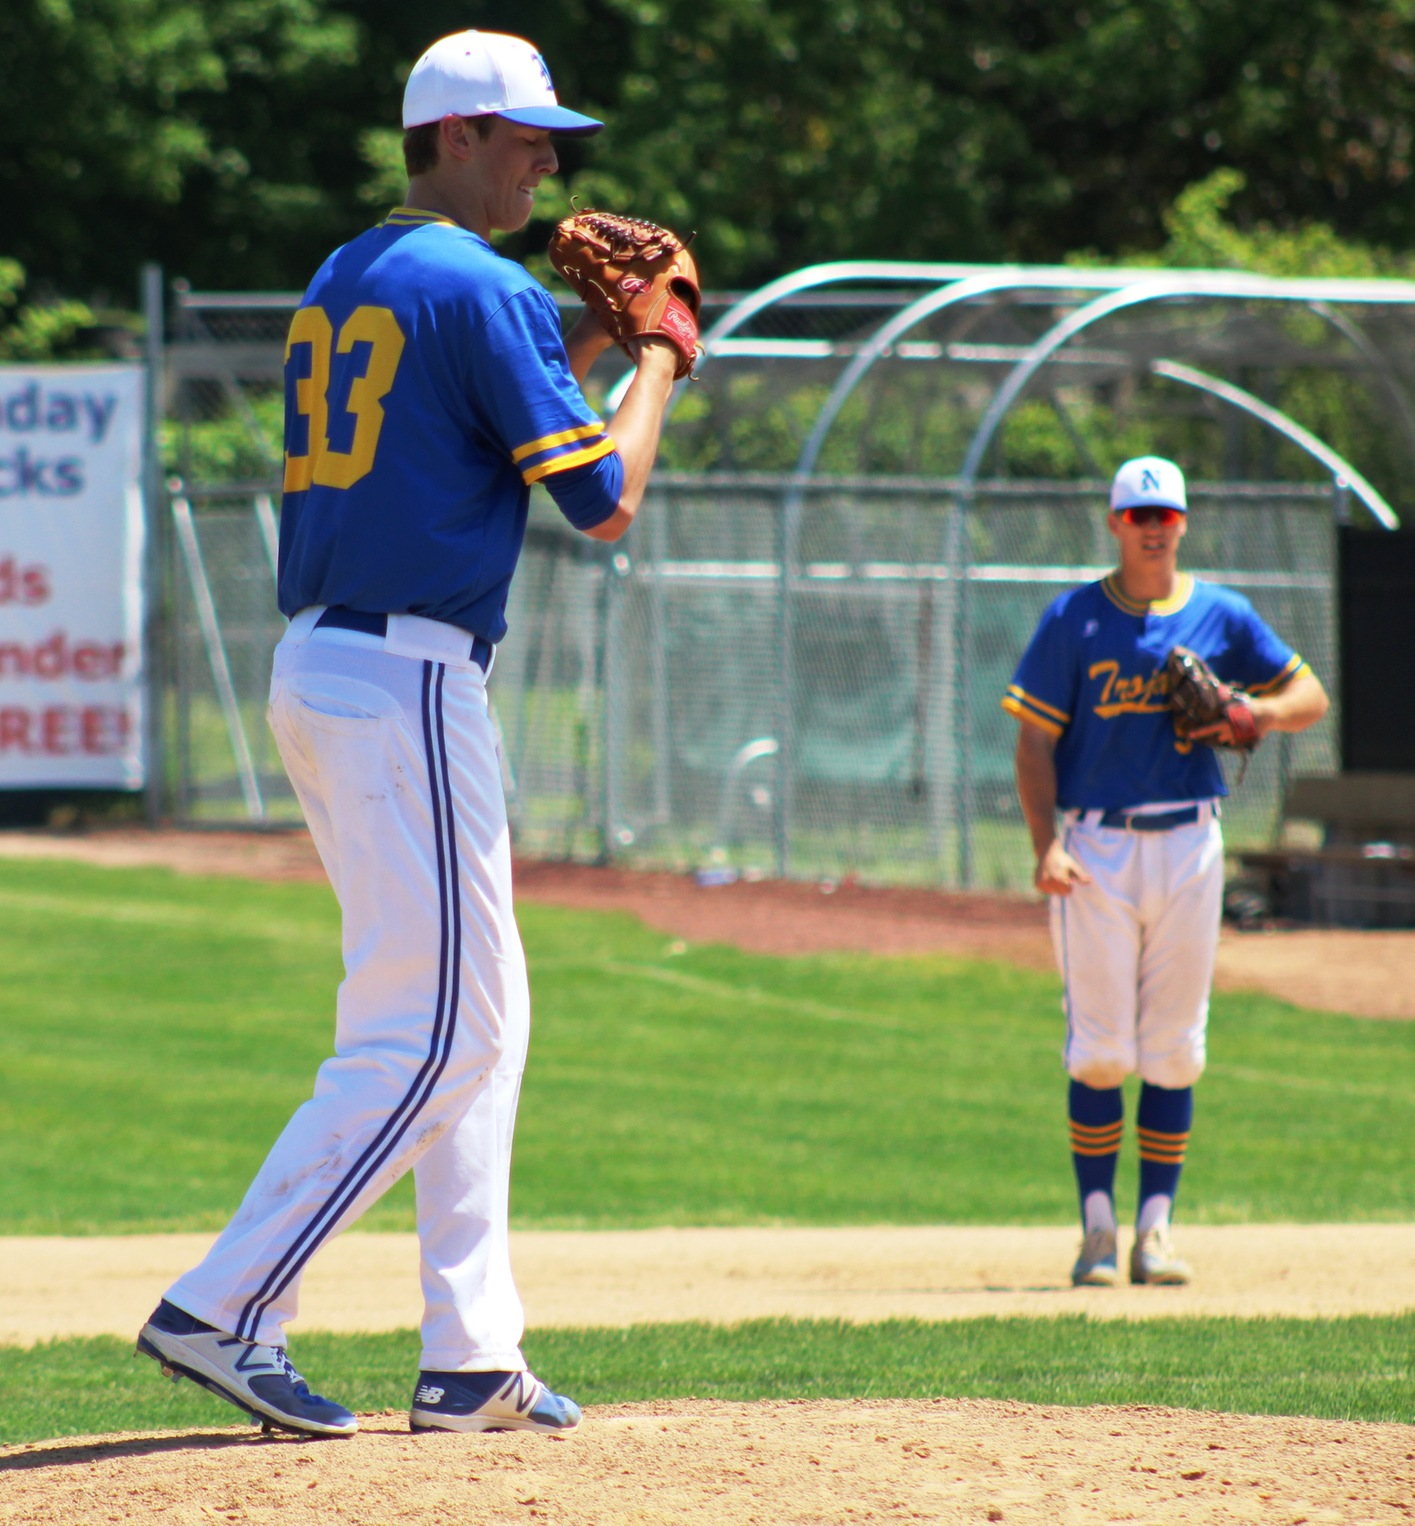 NIACC's Brandon Williamson is ranked 18th on Perfect Game's list of top 75 junior college prospects for the 2018 MLB Draft.